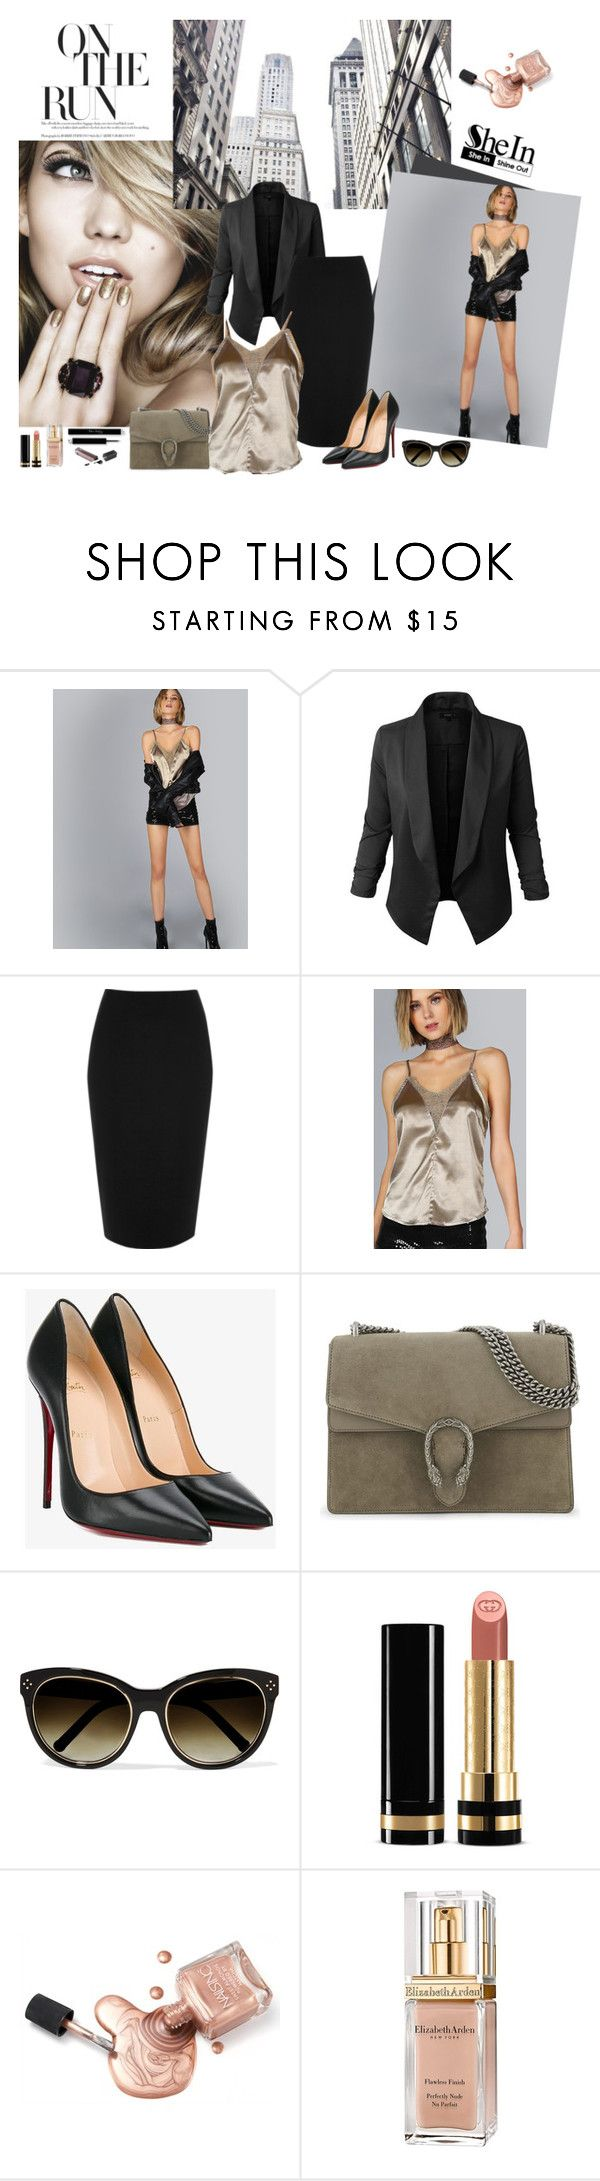 """Chic look"" by laila-cervantes ❤ liked on Polyvore featuring Jupe de Abby, River Island, Christian Louboutin, Gucci, Chloé and Elizabeth Arden"